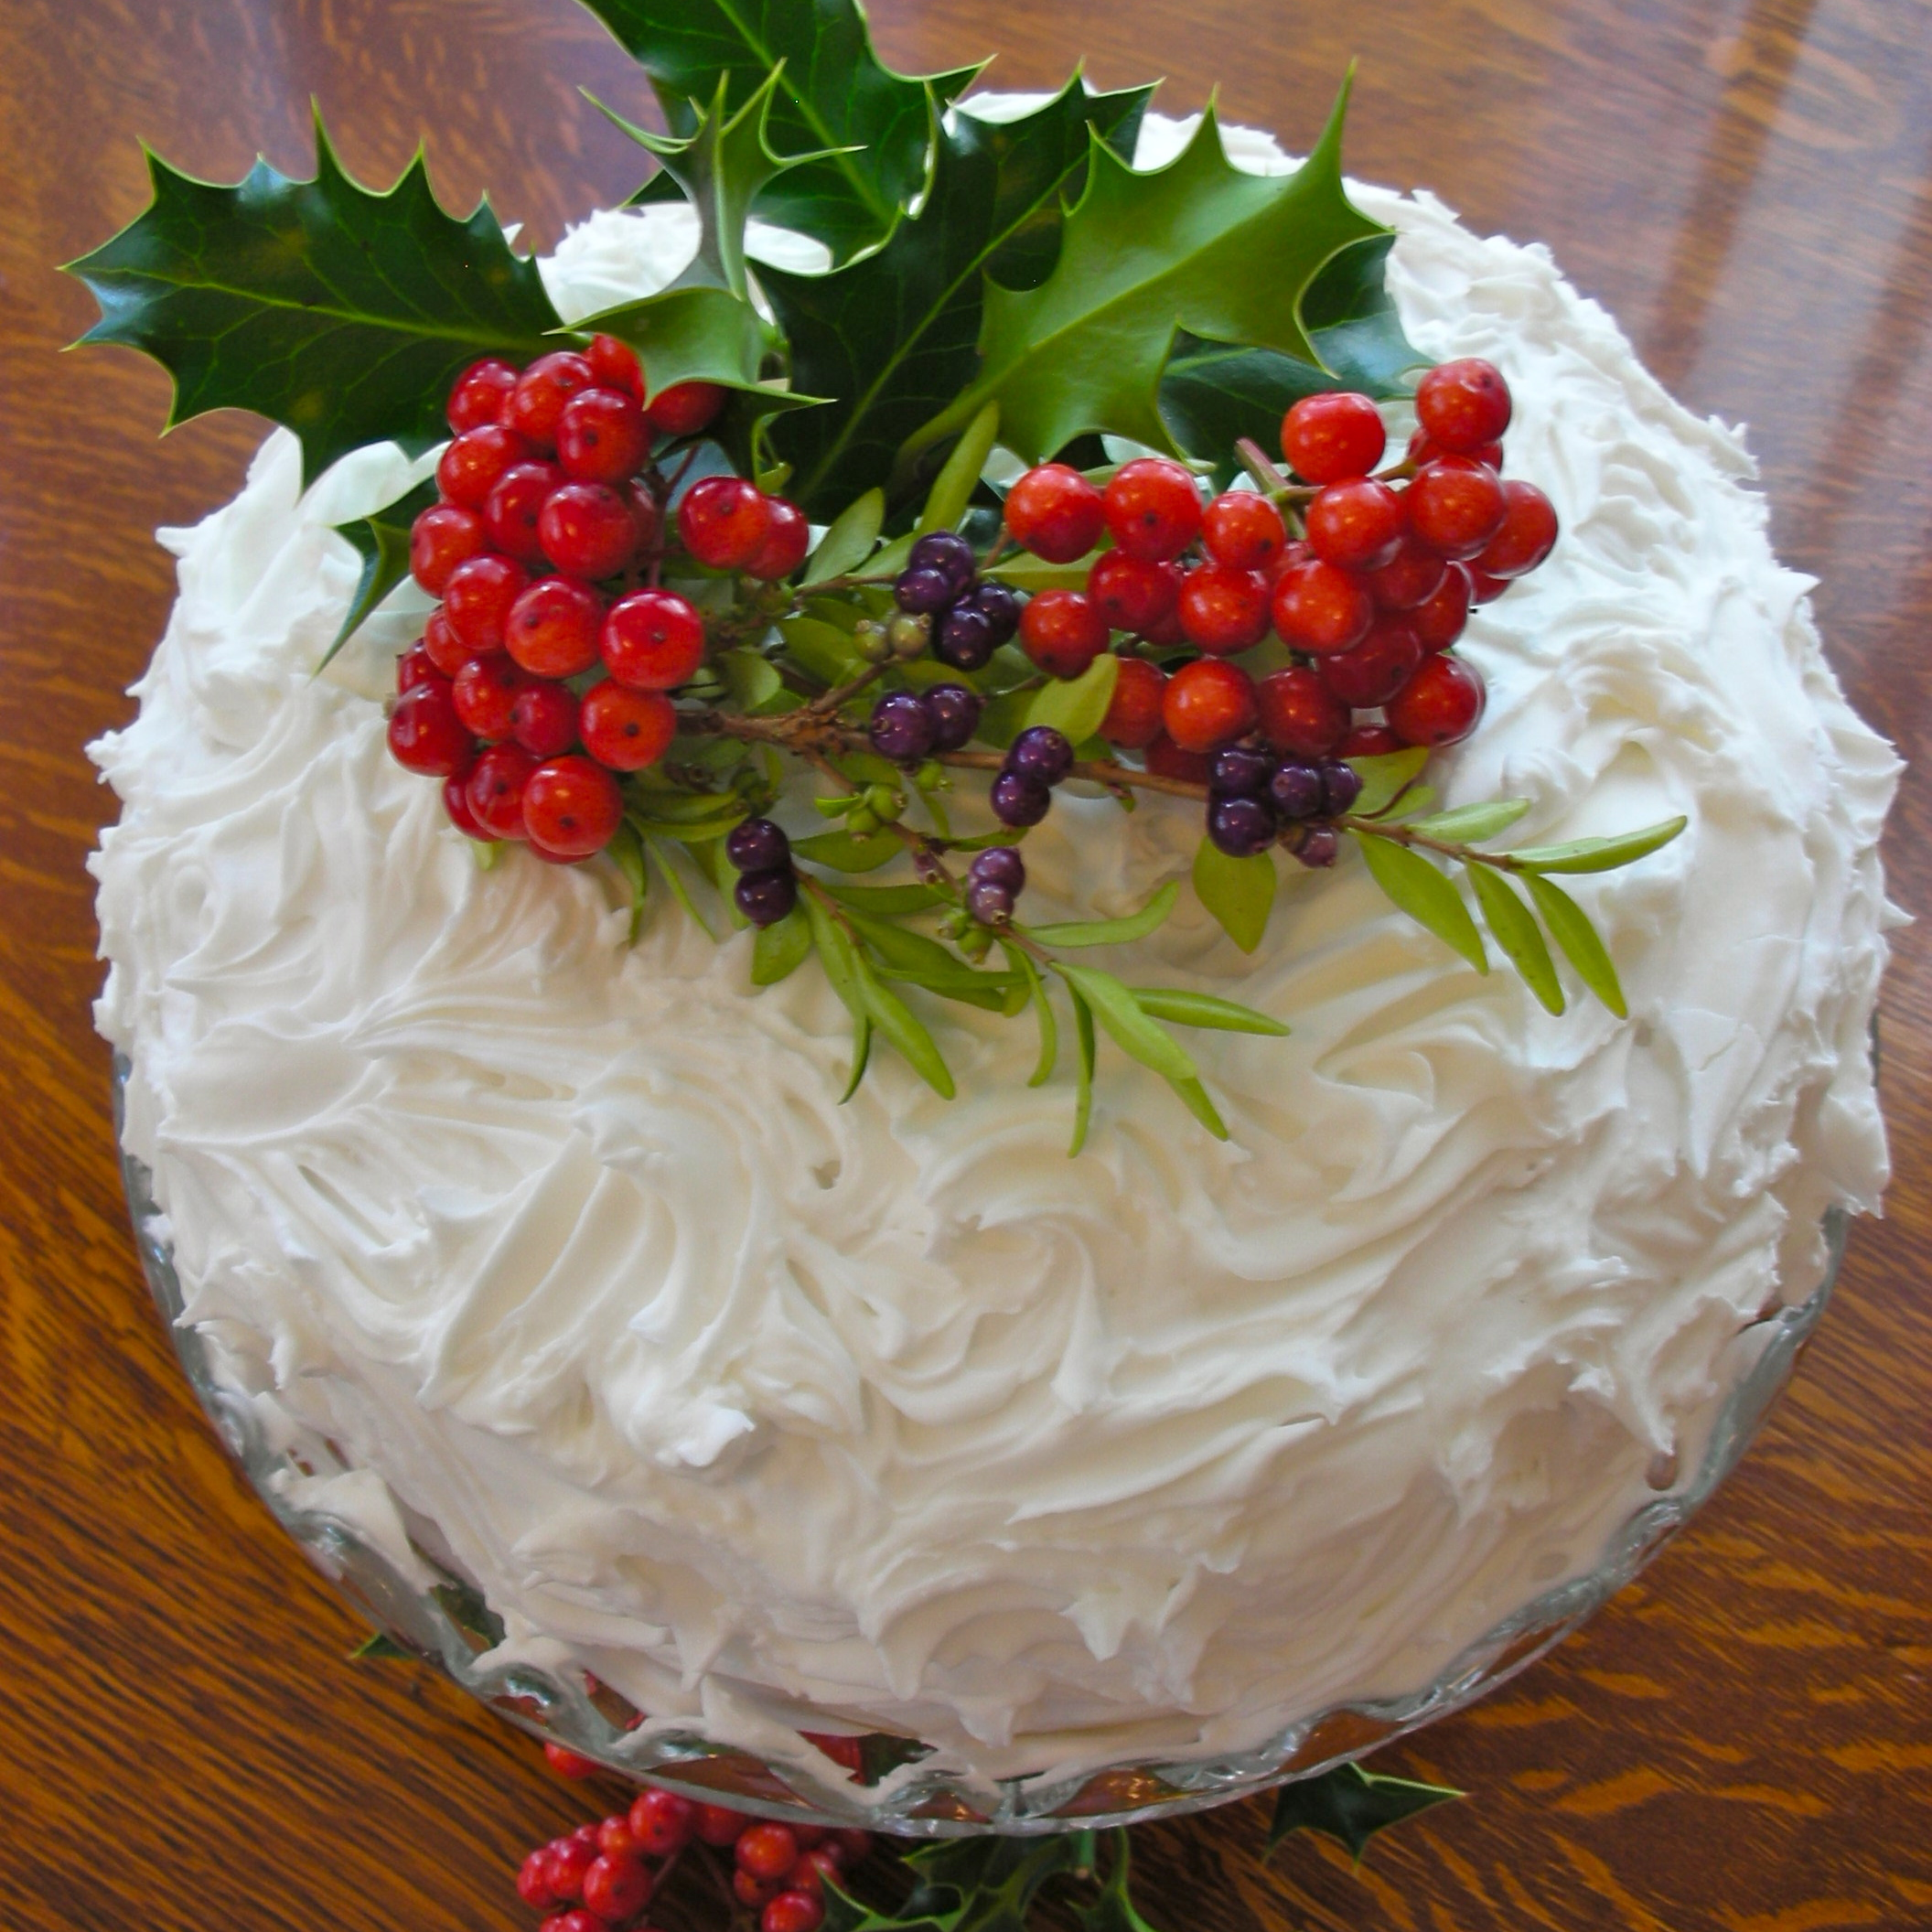 Decorate Christmas cakes with festive flowers